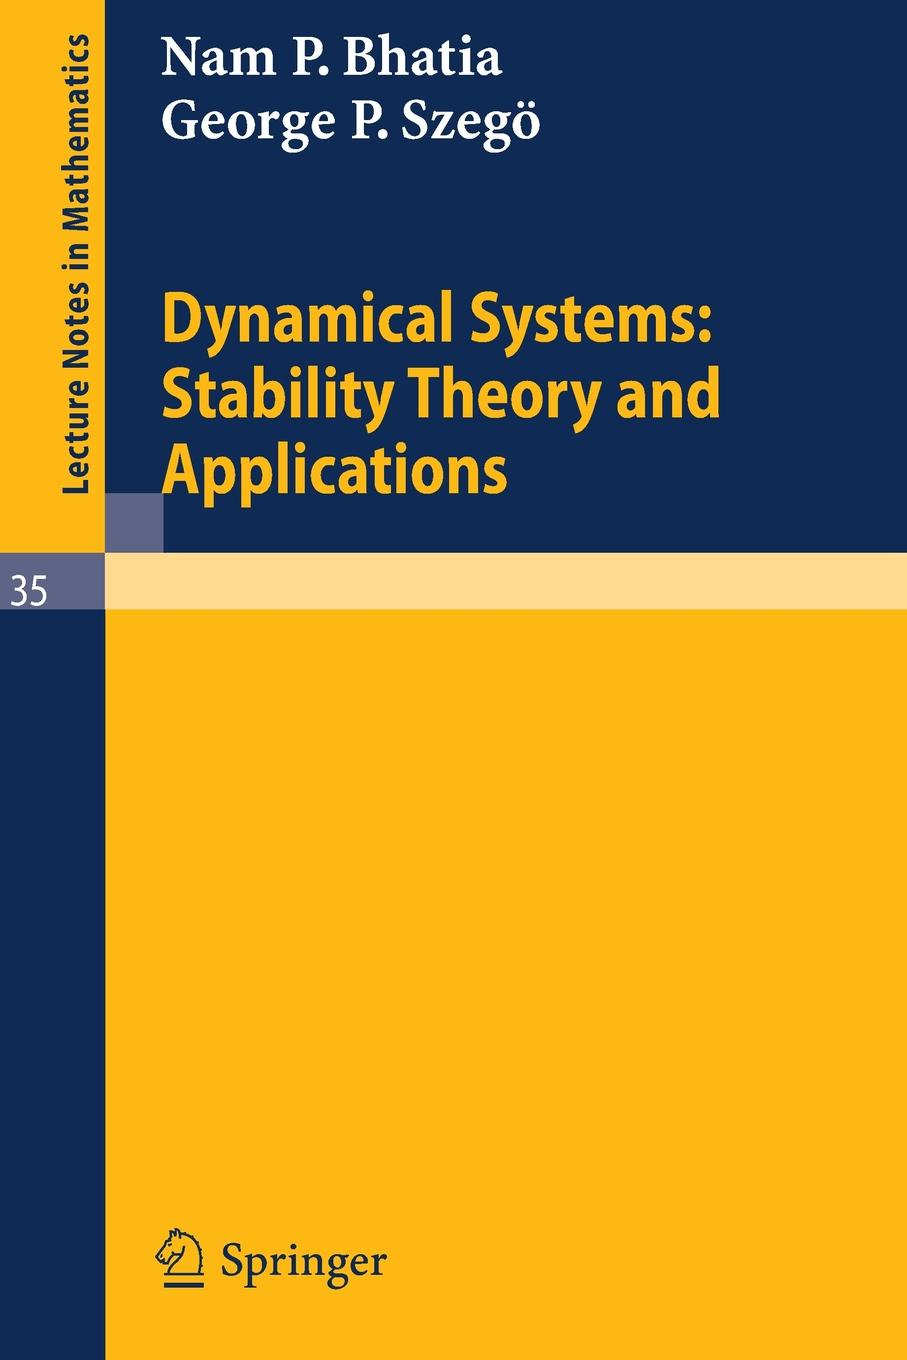 Nam P. Bhatia, George P. Szego, George P. Szega Dynamical Systems. Stability Theory and Applications plamen angelov evolving intelligent systems methodology and applications